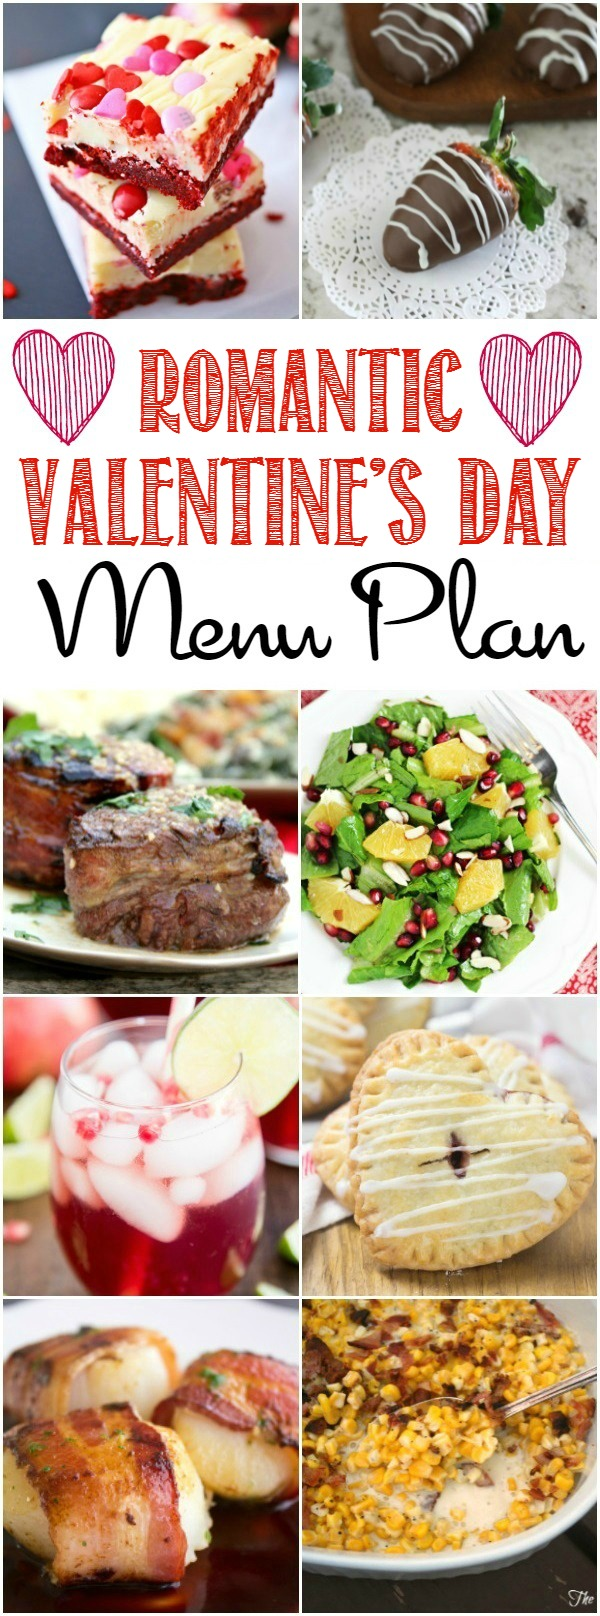 Save money and avoid the crowds with our Romantic Valentine's Day at Home Menu Plan! It features everything you would want for this special dinner: appetizers, main dishes, side dishes, and of course, DESSERT!